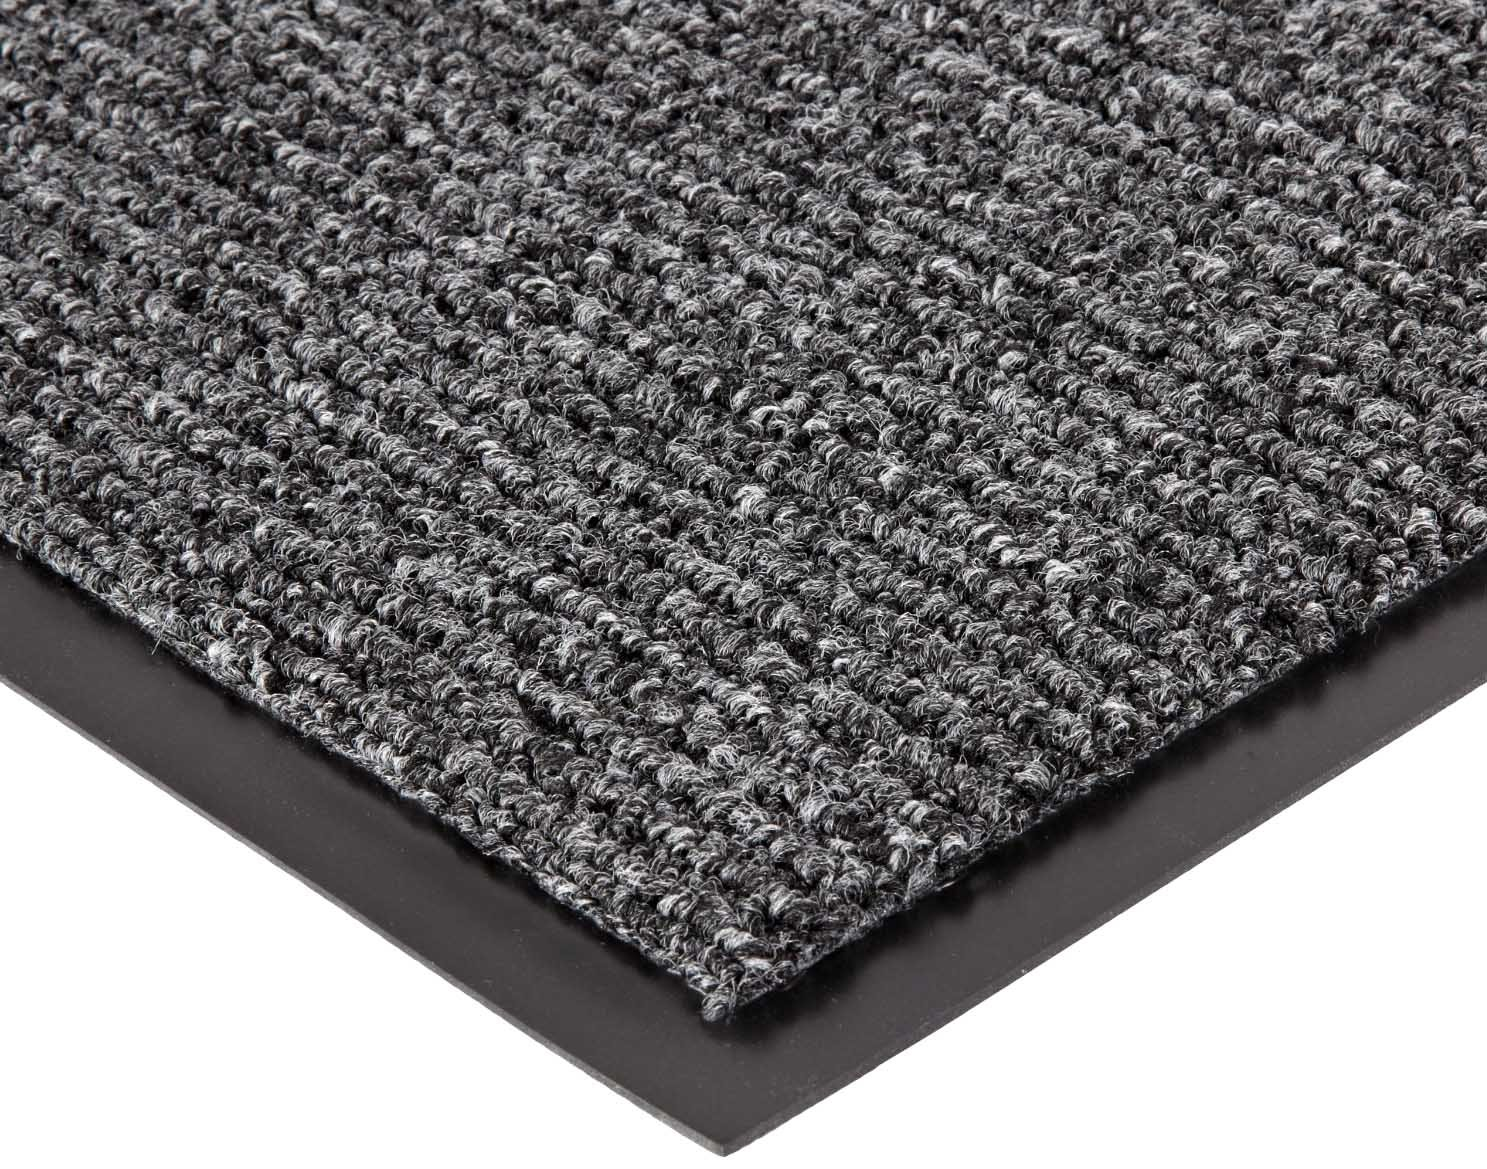 Notrax 132 Estes Entrance Mat, for Main Entranceways and Heavy Traffic Areas, 4' Width x 6' Length x 3/8'' Thickness, Charcoal